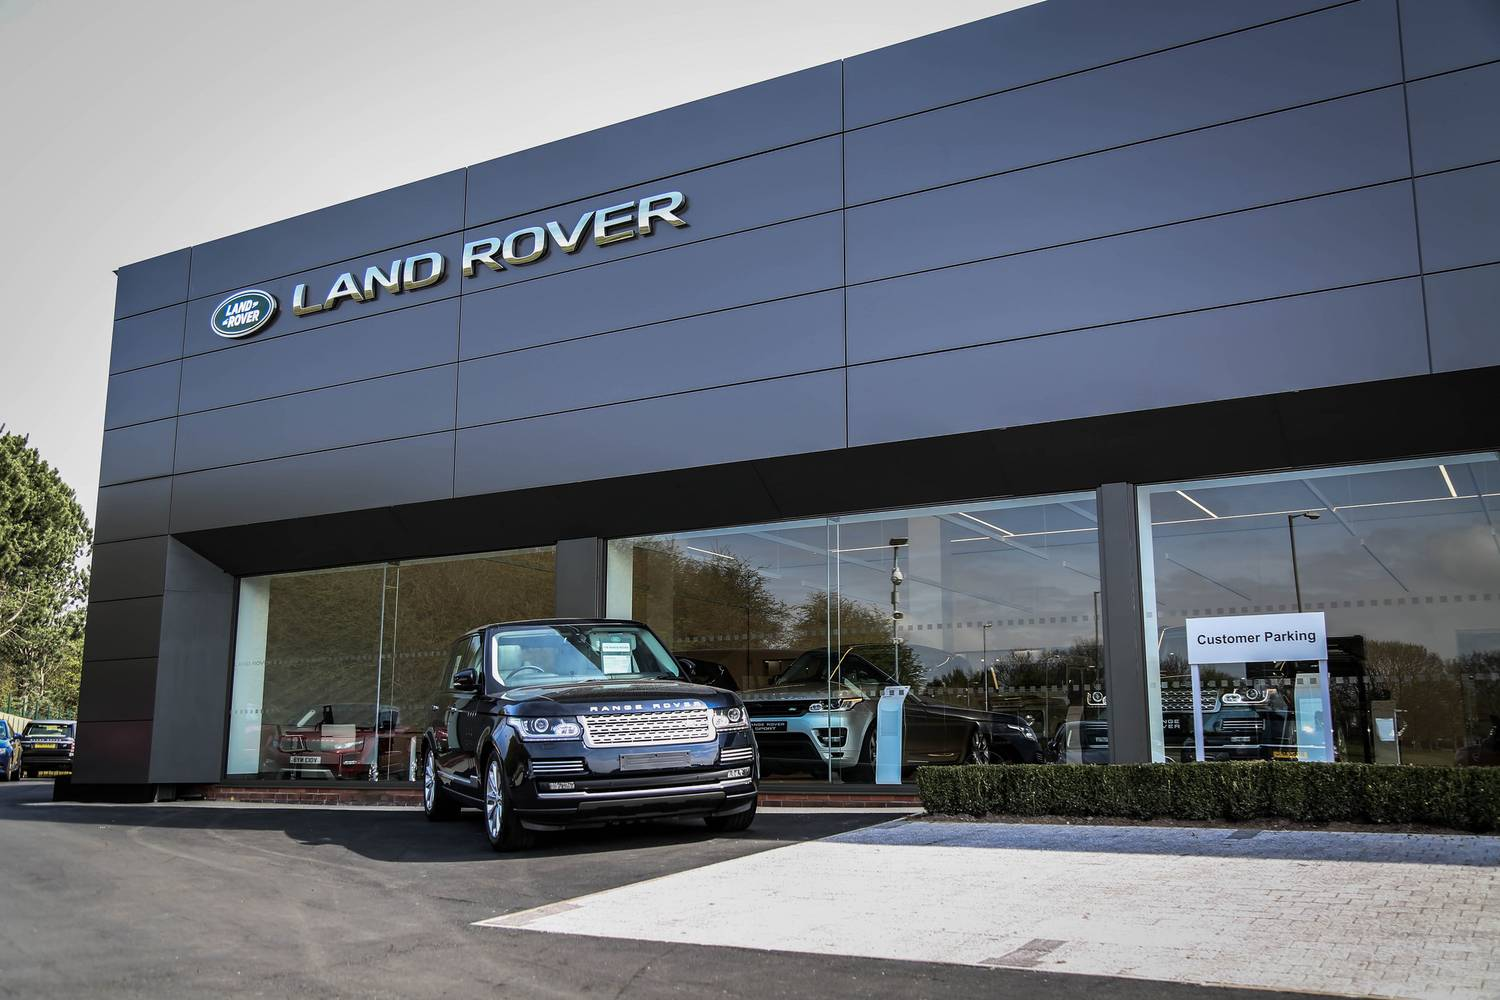 Listers Land Rover UK New Used Land Rover Dealers - Land rover local dealer